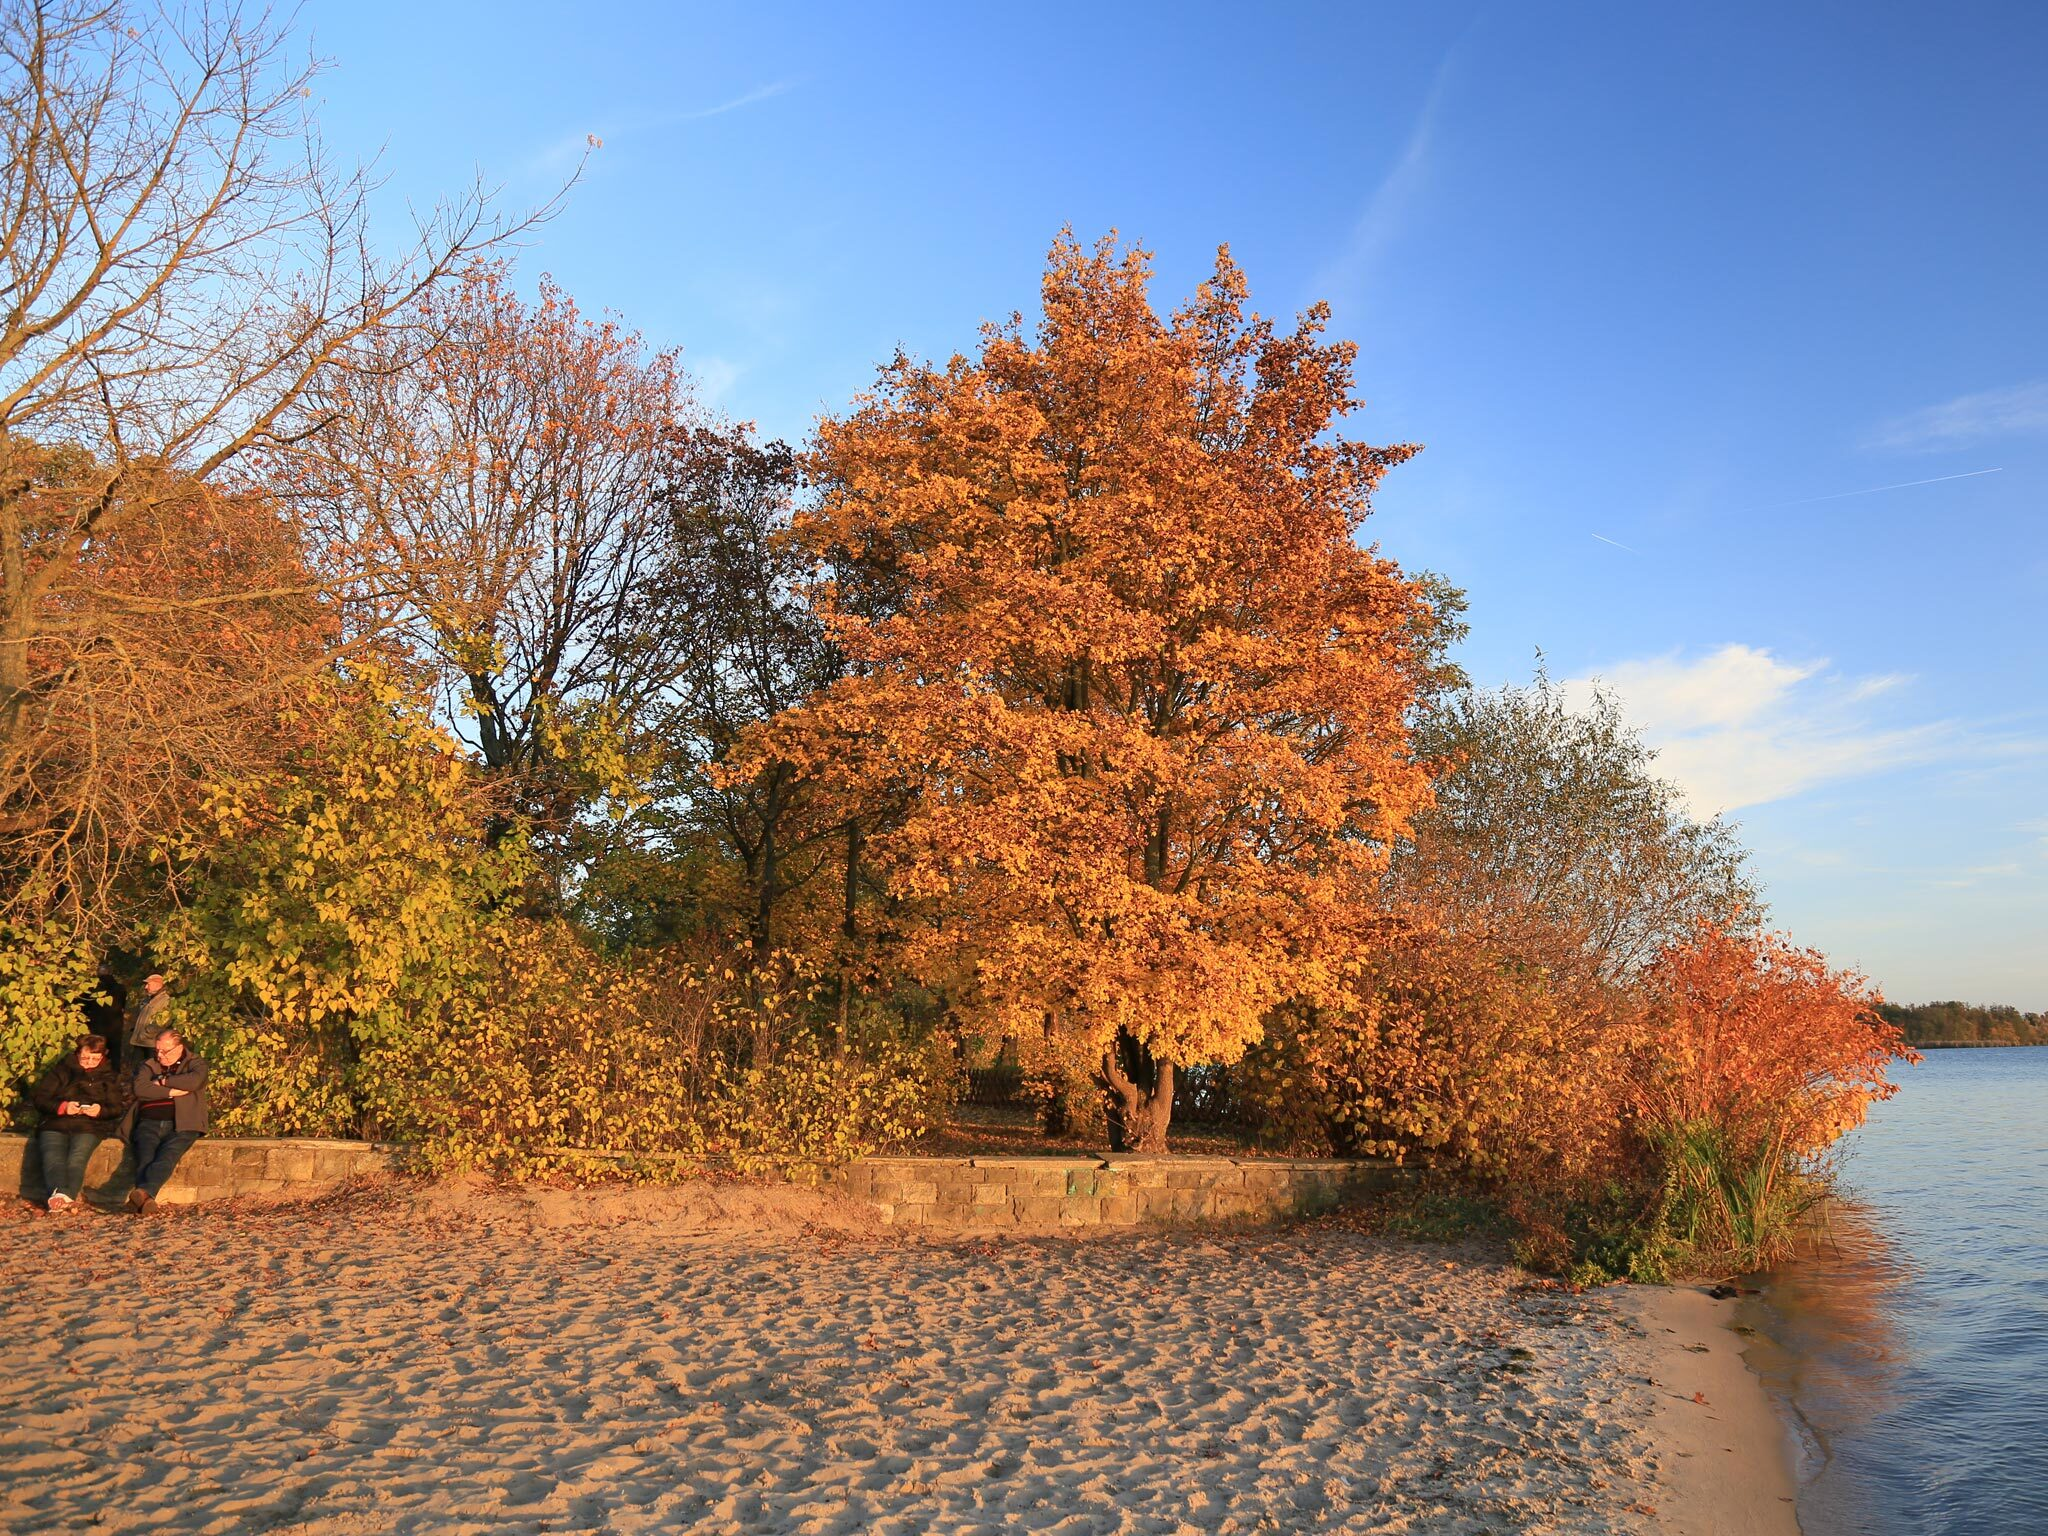 A beach at Müggelsee in Berlin